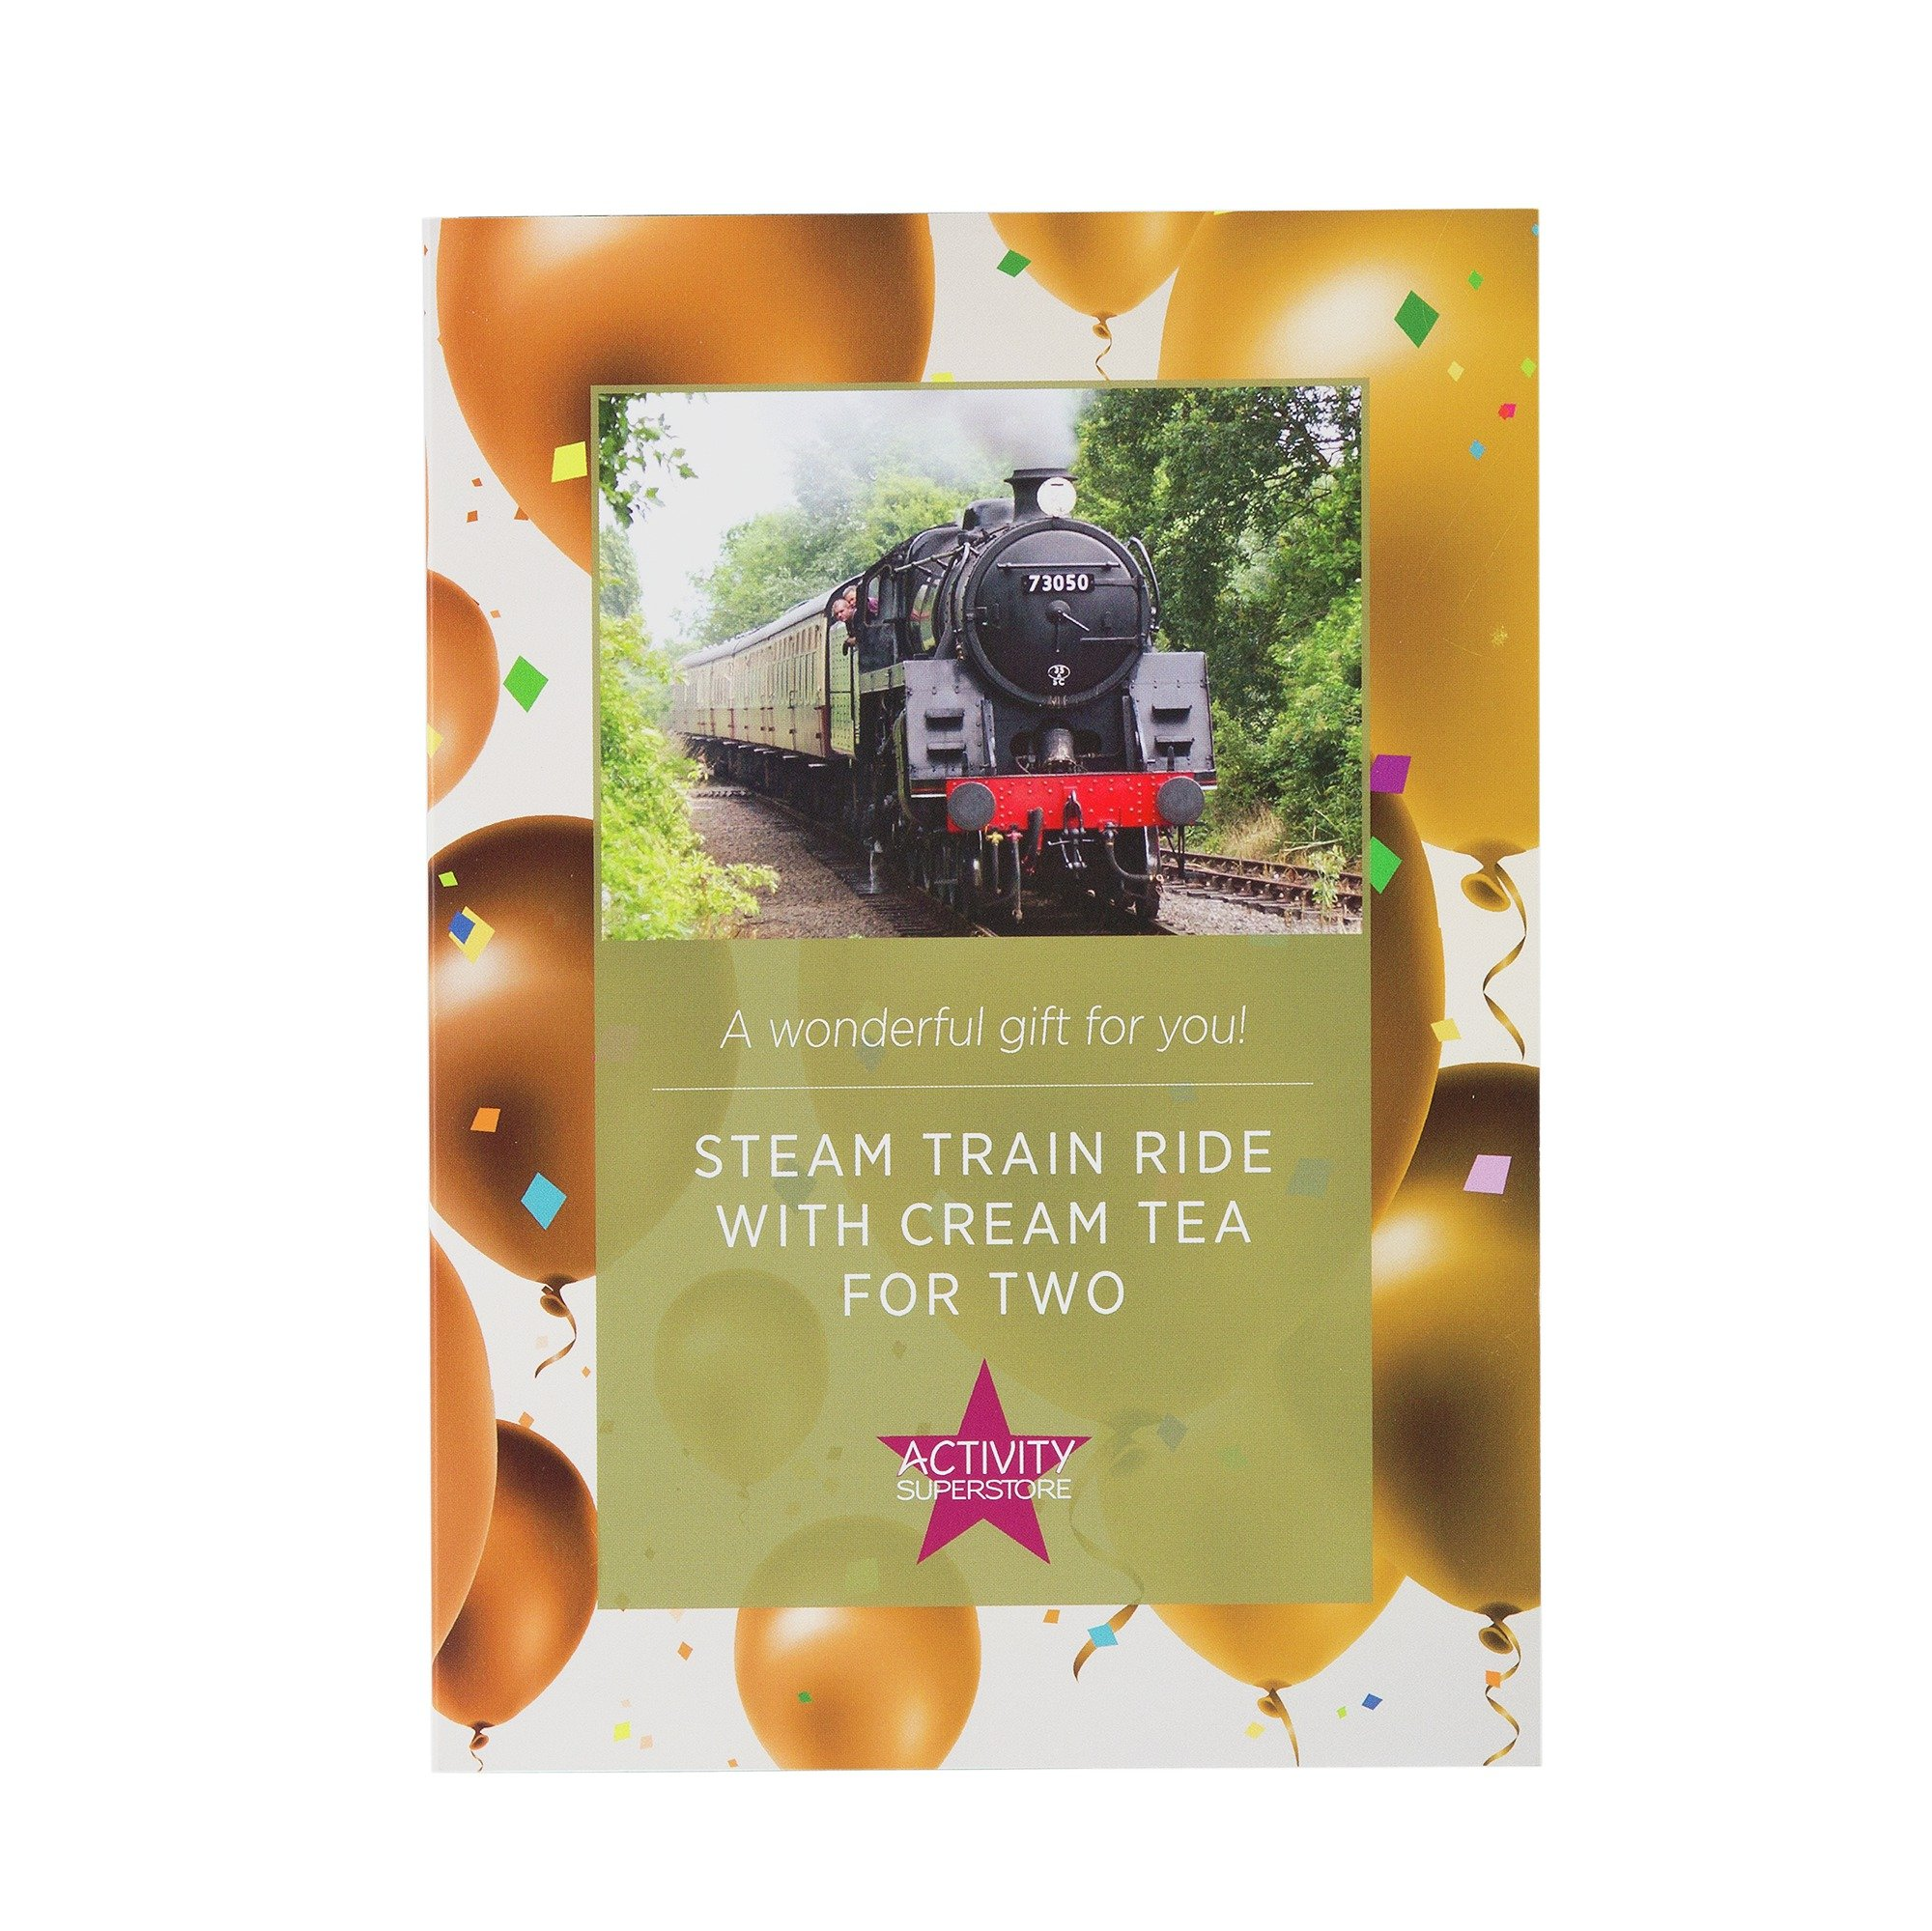 Steam Train Ride For Two With Cream Tea - Experience